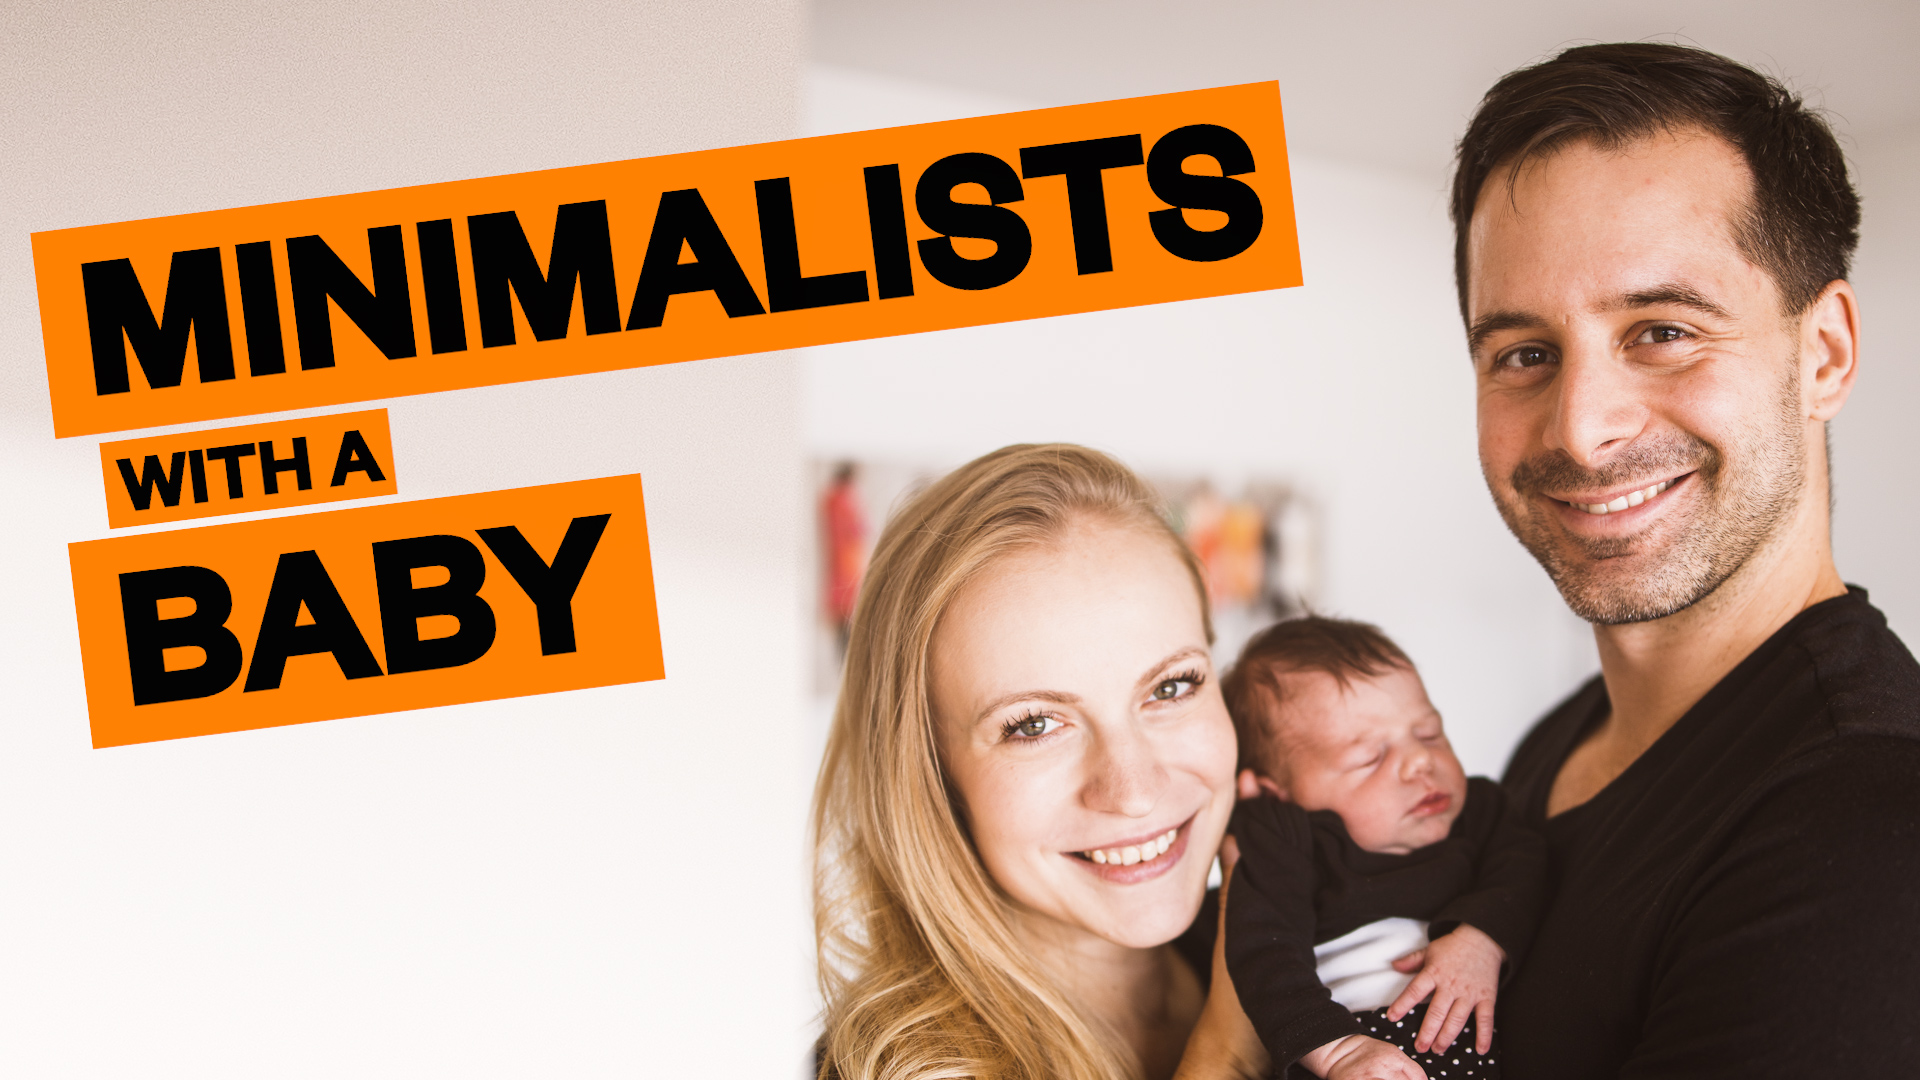 Minimalists With a Baby - What Has Changed?